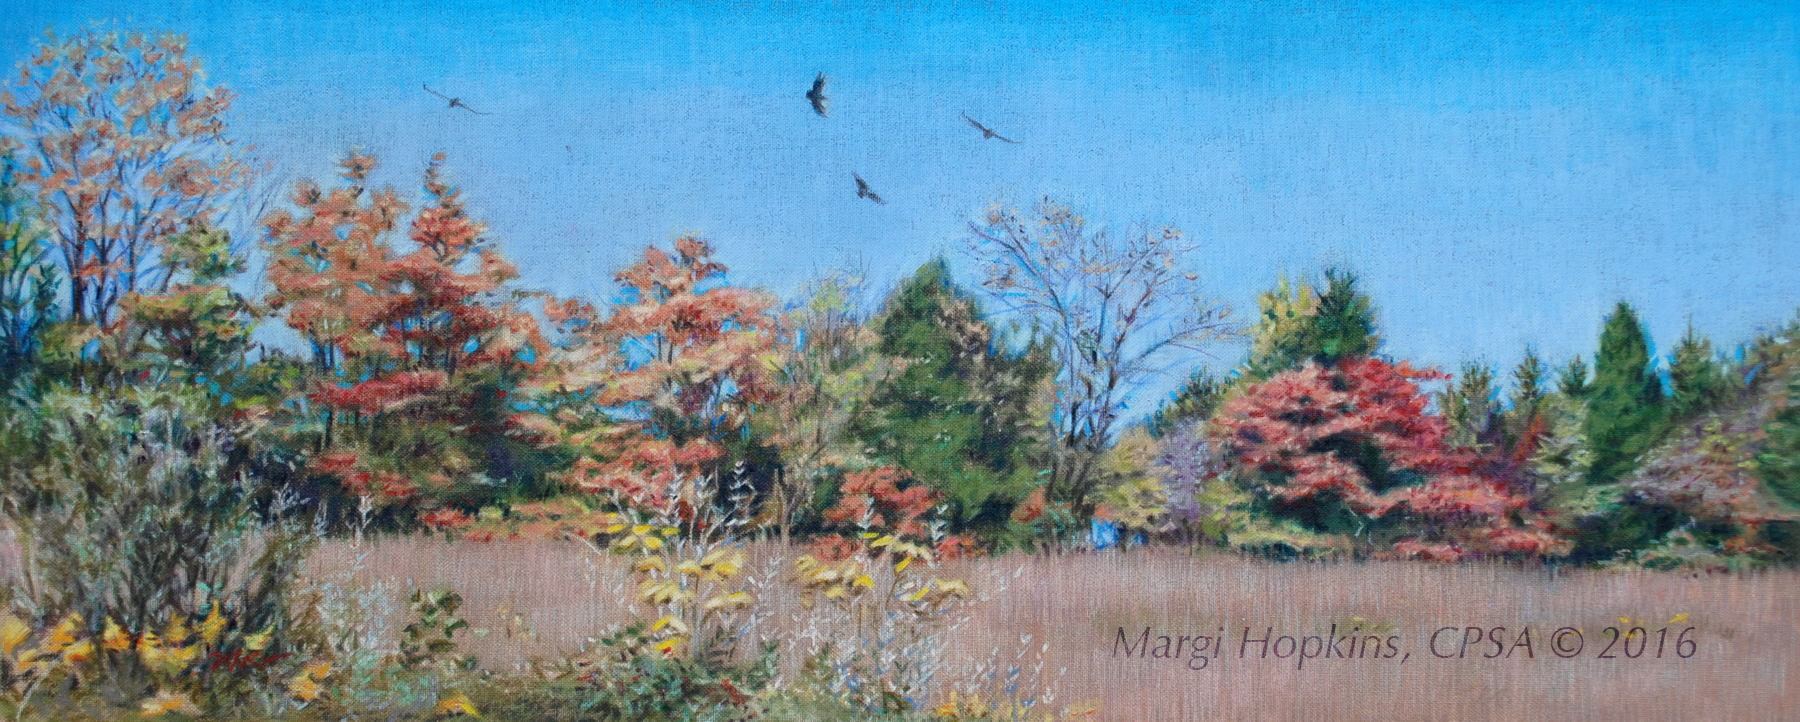 "The Buzzards of Shor Park, approximately 16 x 4"", Colored Pencil on Linen."